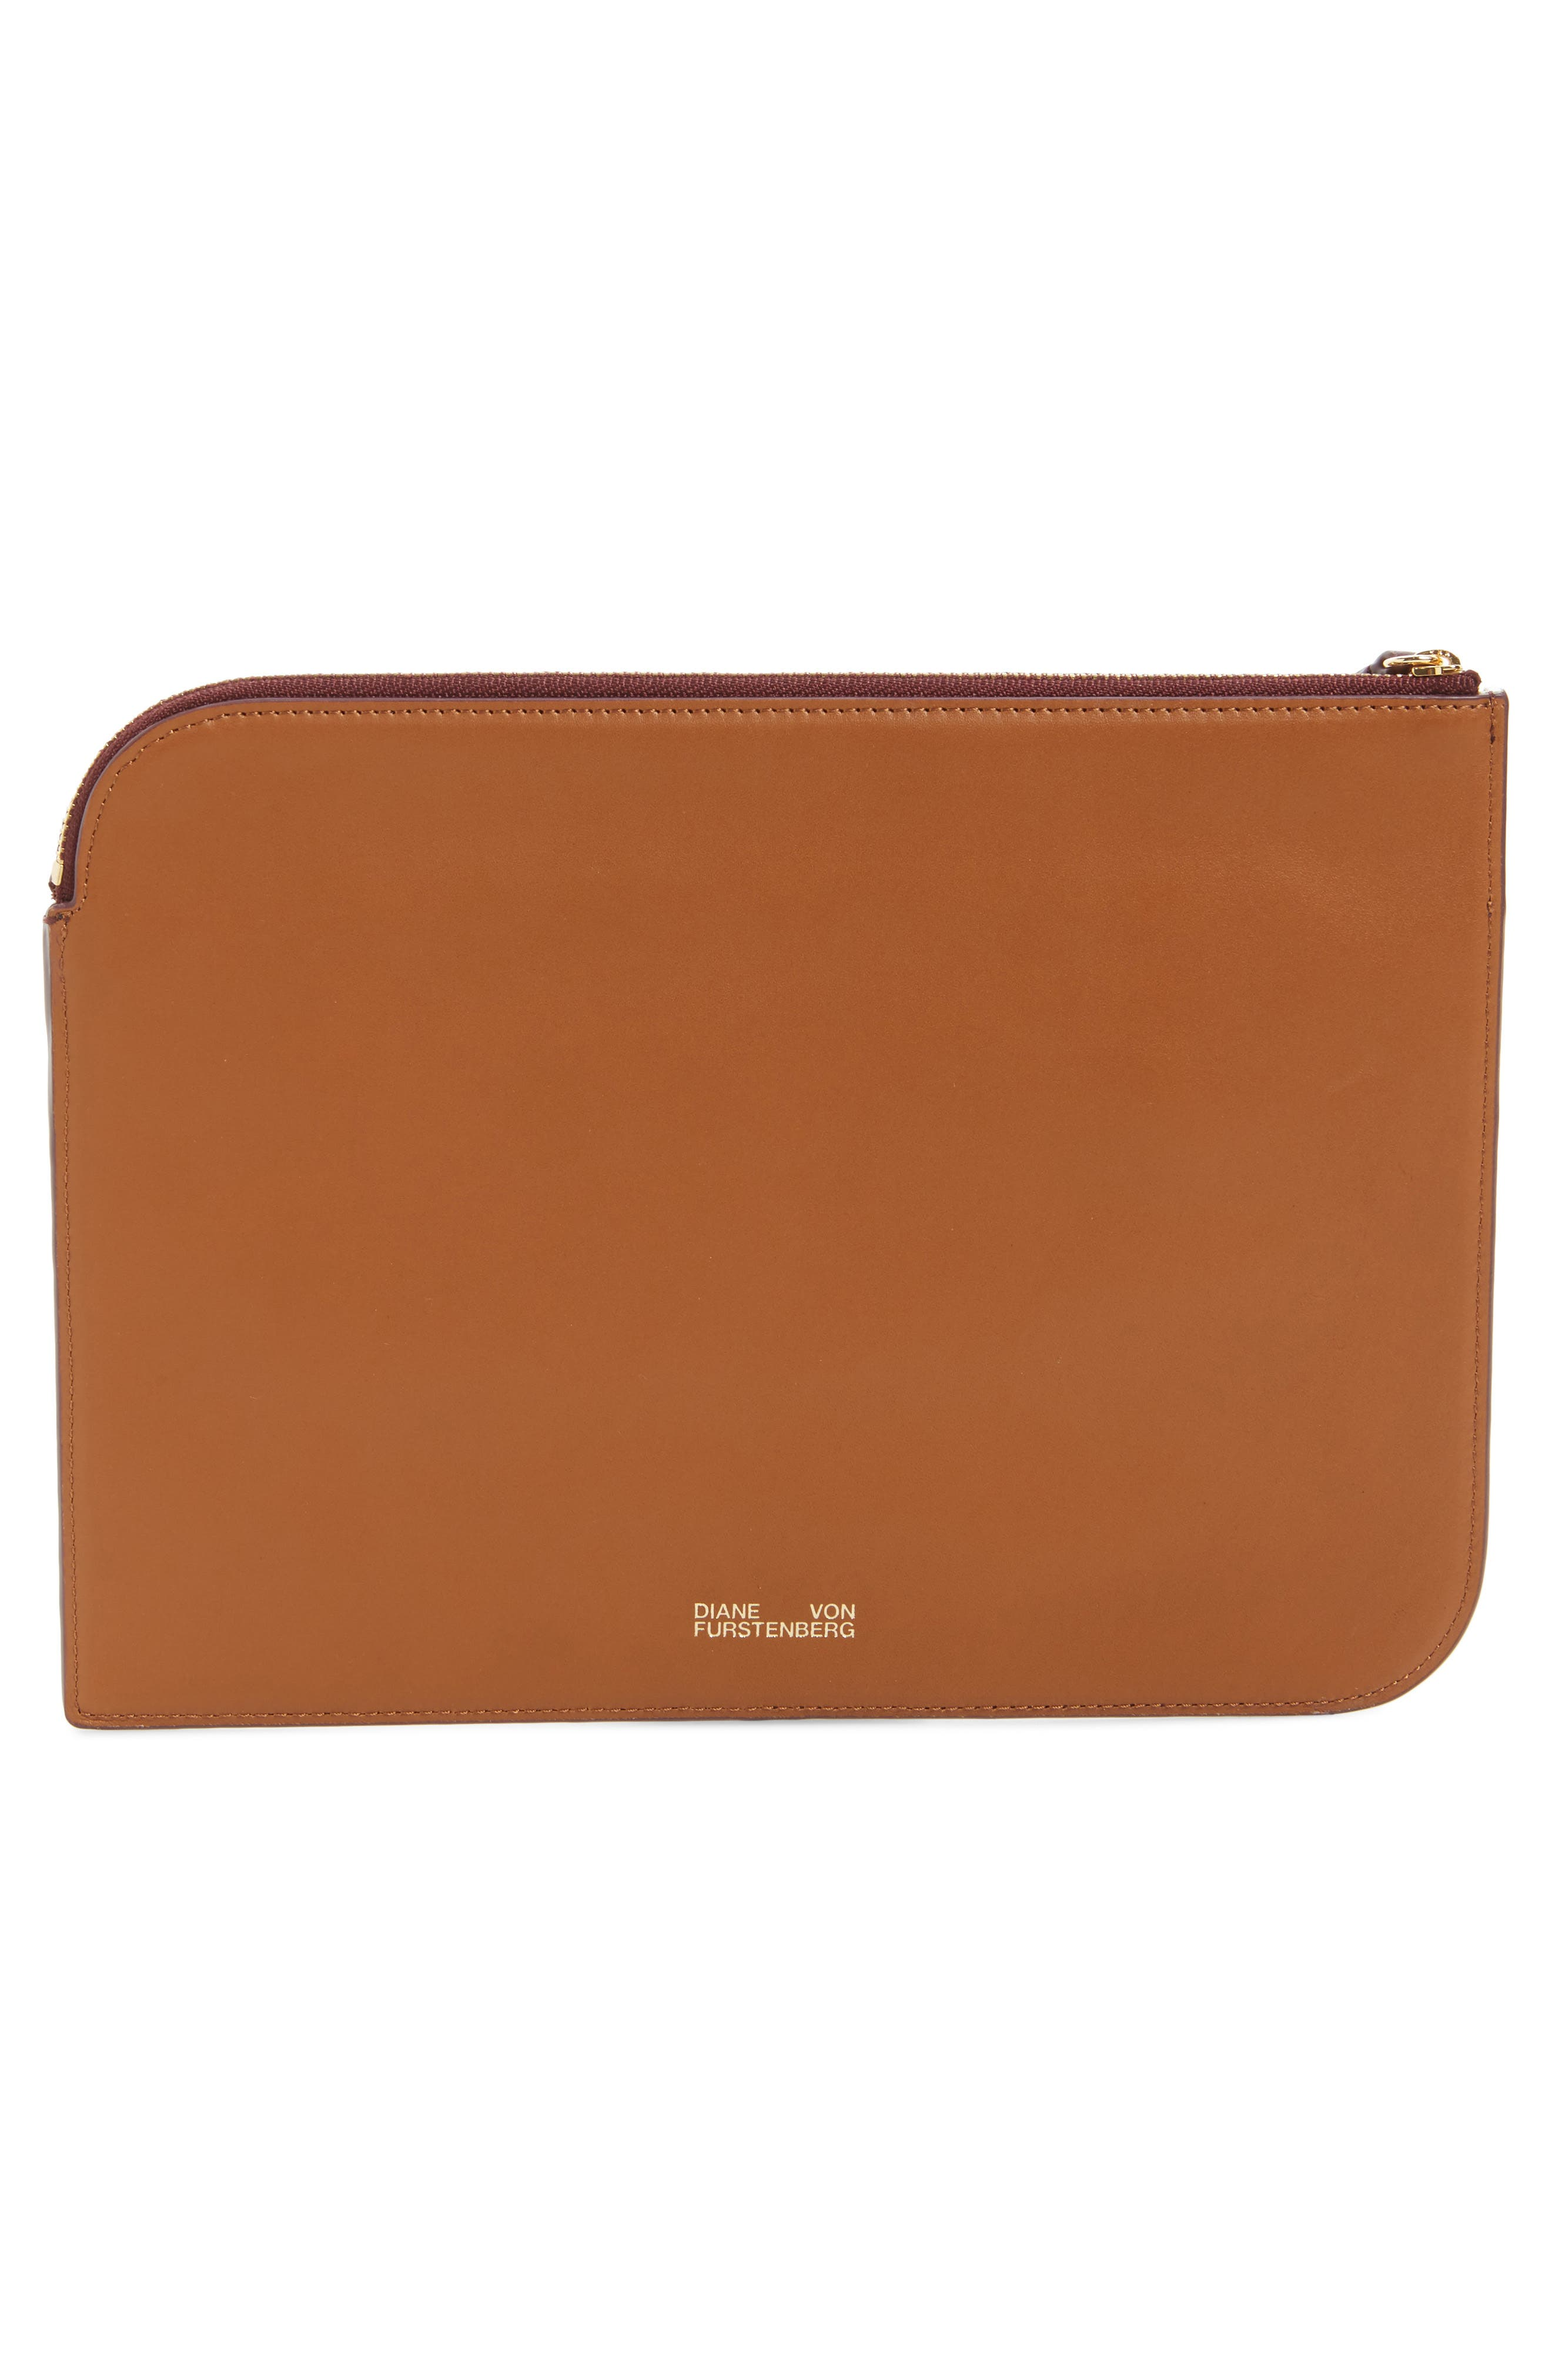 Alternate Image 3  - Diane von Furstenberg Large Colorblock Leather Zip Pouch